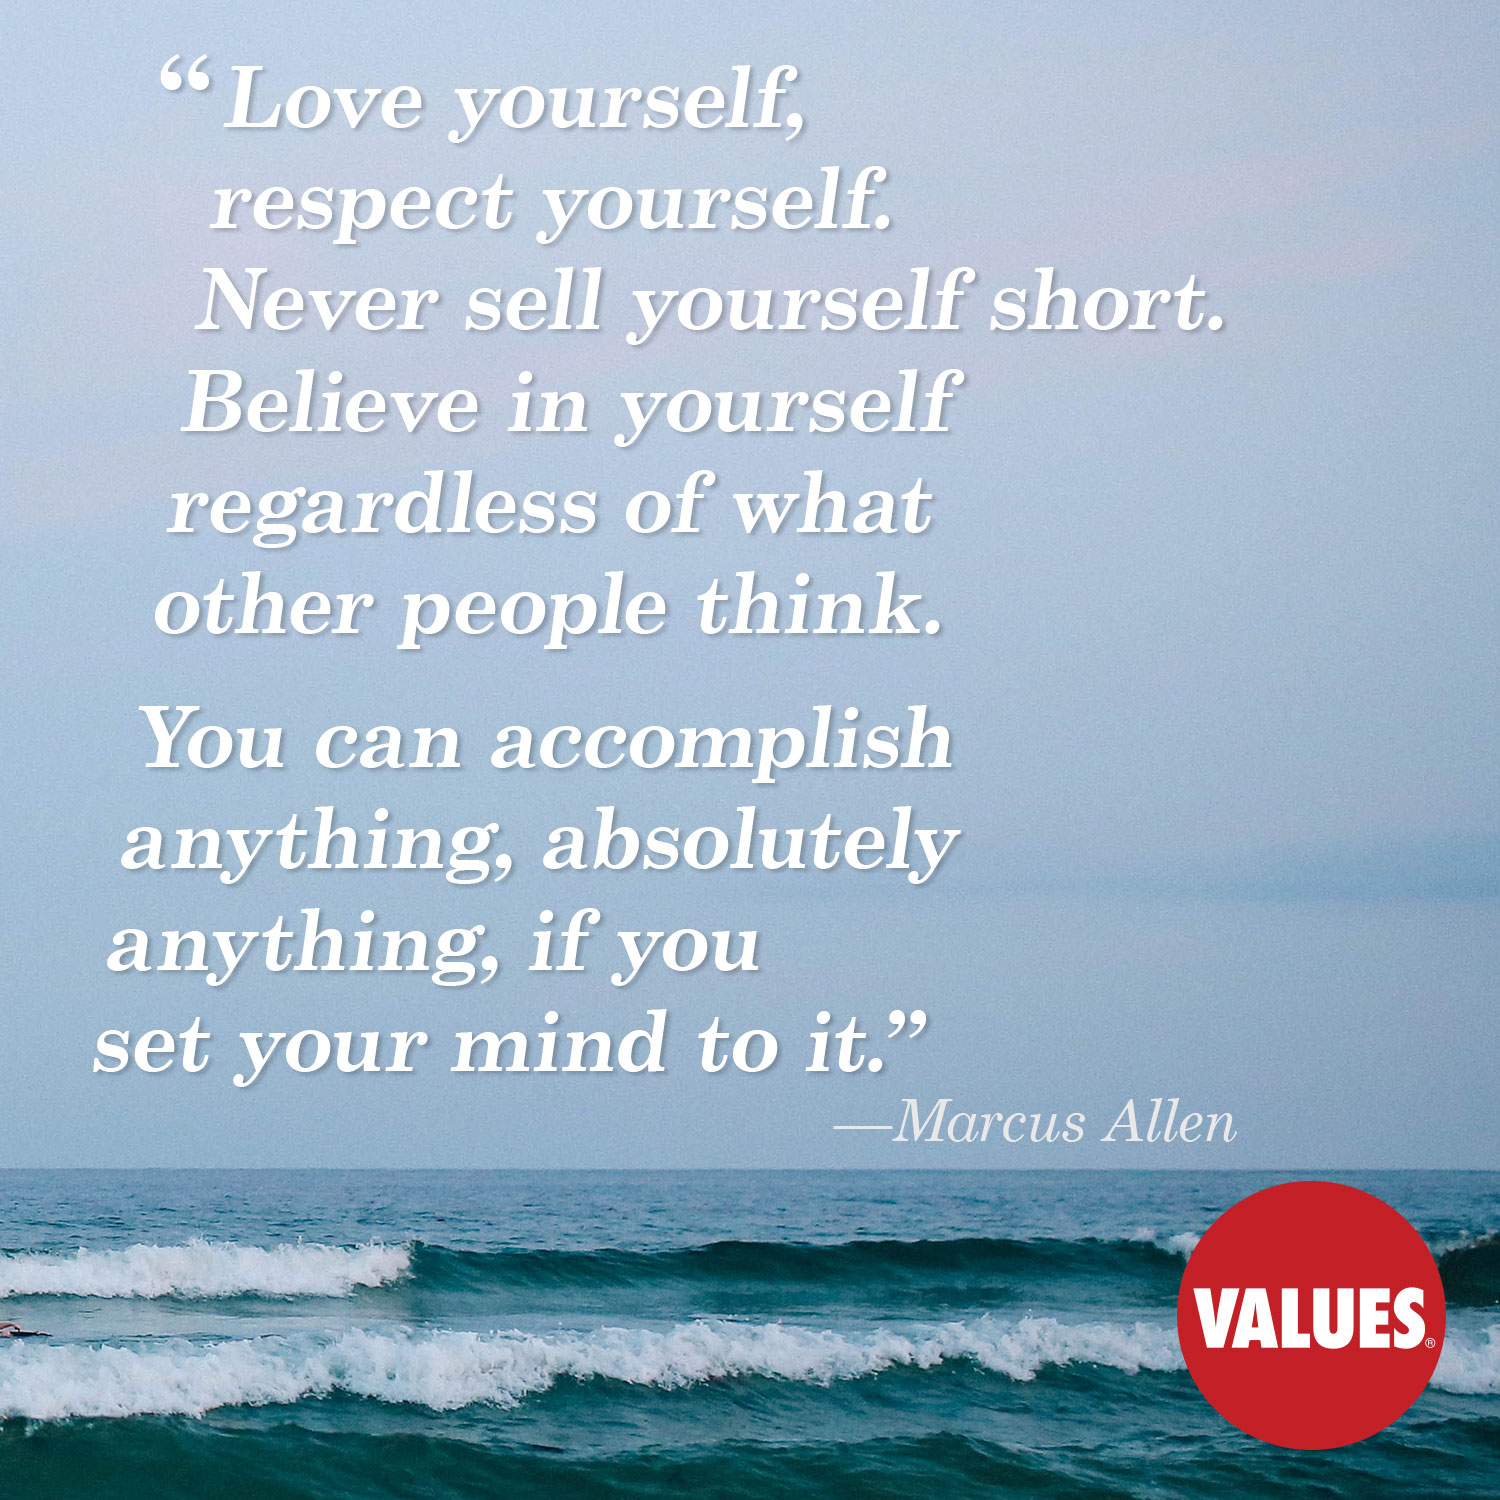 Love yourself, respect yourself. Never sell yourself short. Believe in yourself regardless of what other people think. You can accomplish anything, absolutely anything, if you set your mind to it. —Marcus Allen